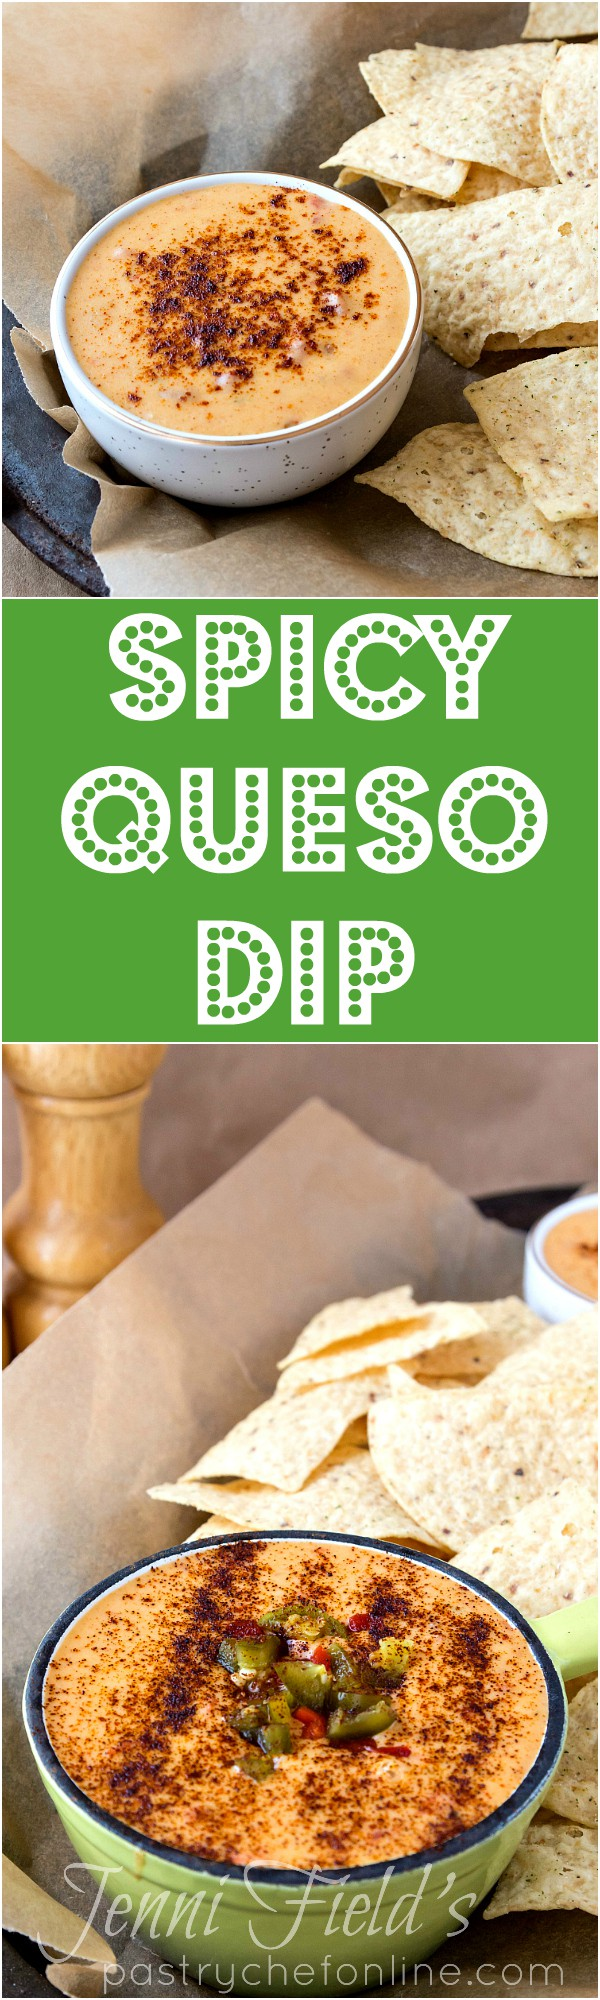 This spicy queso dip is smoky with chipotle and chunky with diced tomatoes and chiles. If you are looking for an easy and delicious queso recipe, you have found it! | pastrychefonline.com